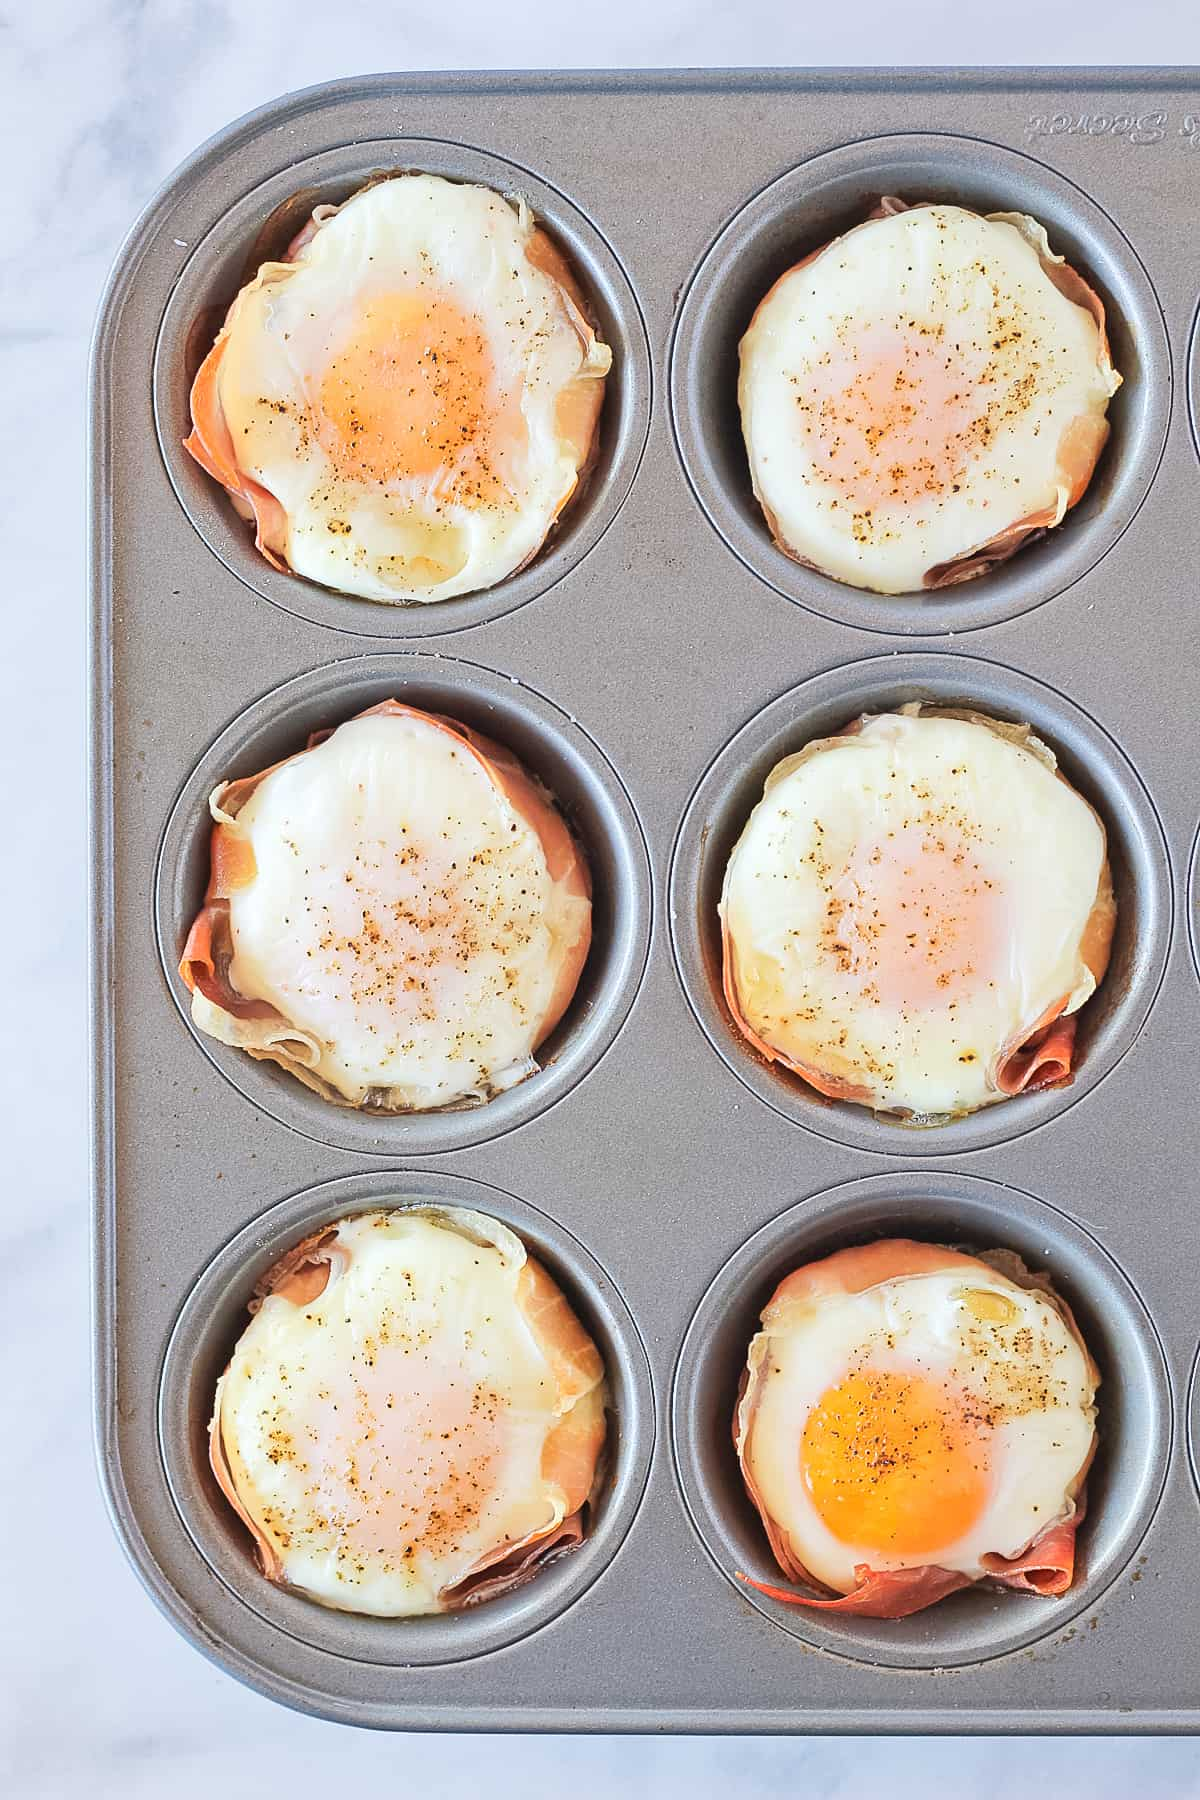 Muffin pan with 6 cooked keto egg muffins.